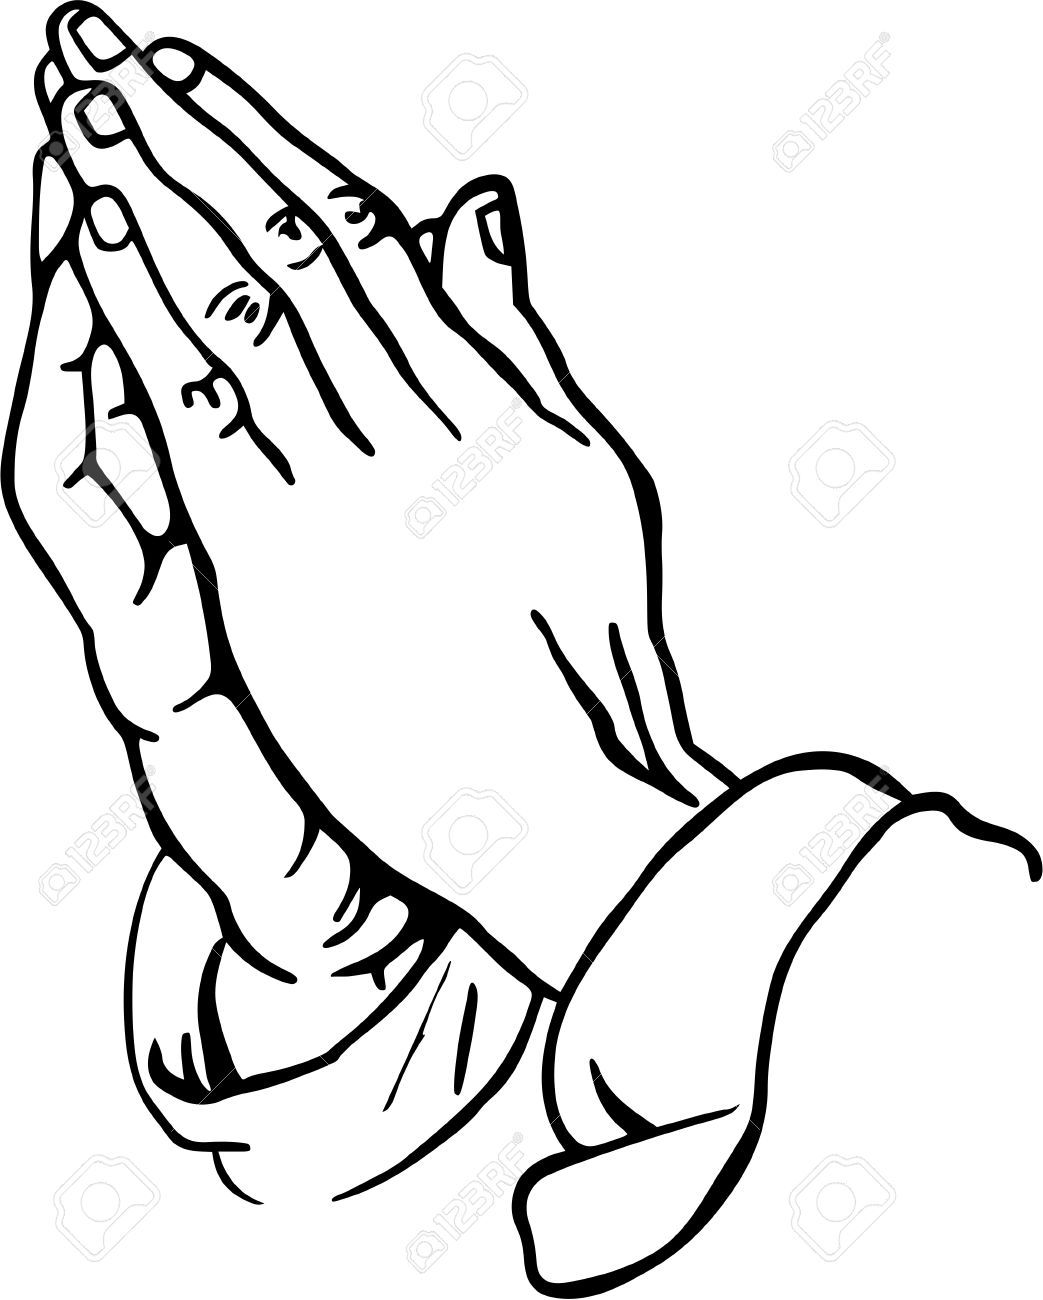 praying hands clipart stock photo picture and royalty free image rh pinterest com clipart pictures of praying hands clipart of praying hands with bible